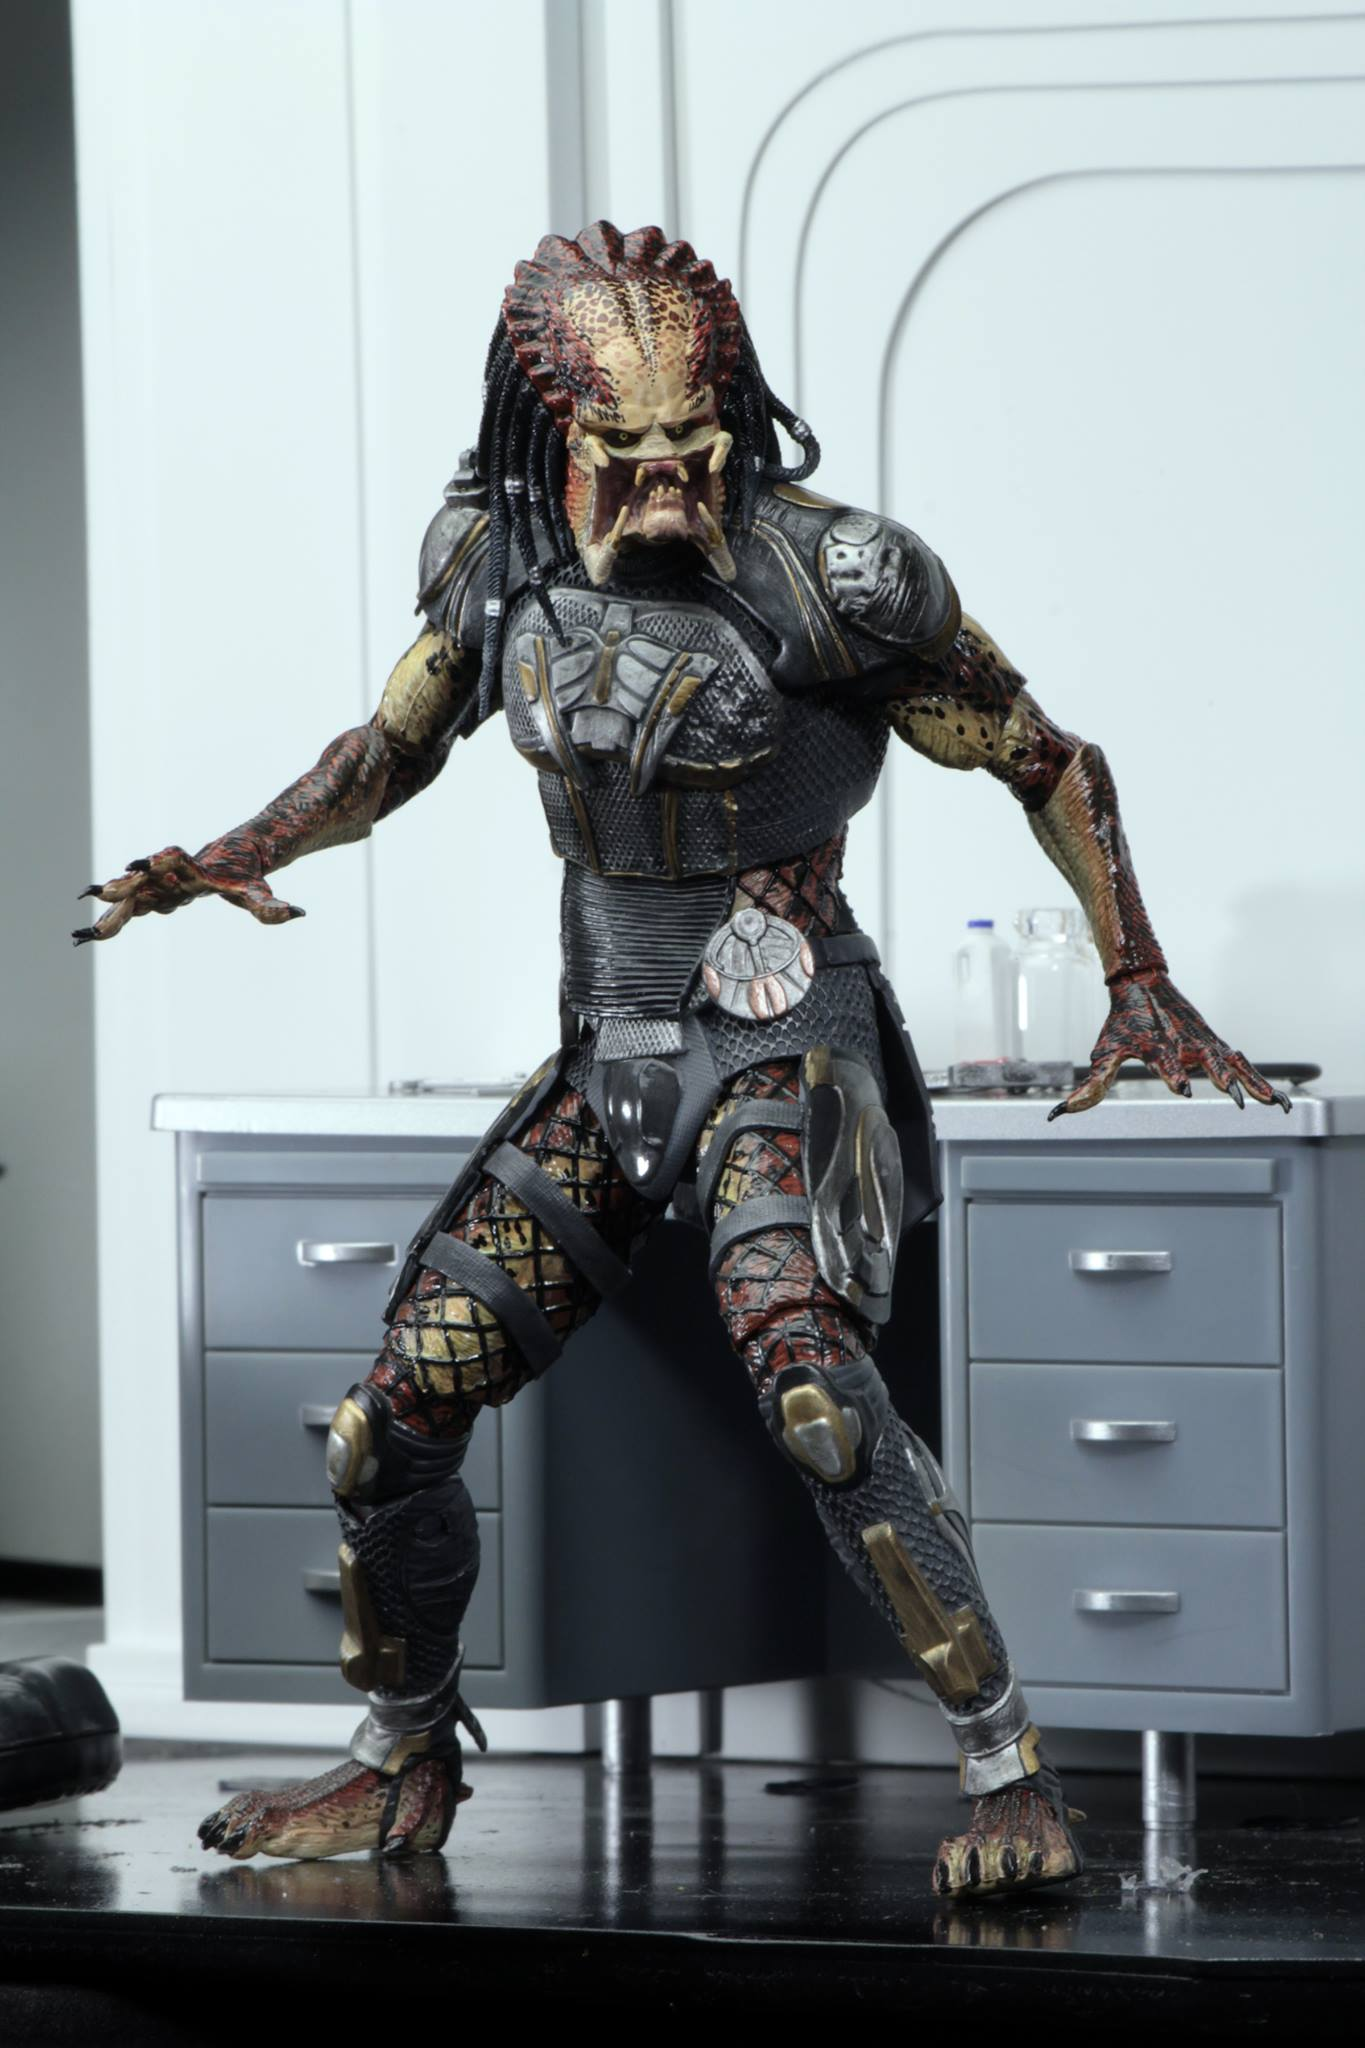 Behind-The-Scenes Look at the Assassin Predator and Fugitive